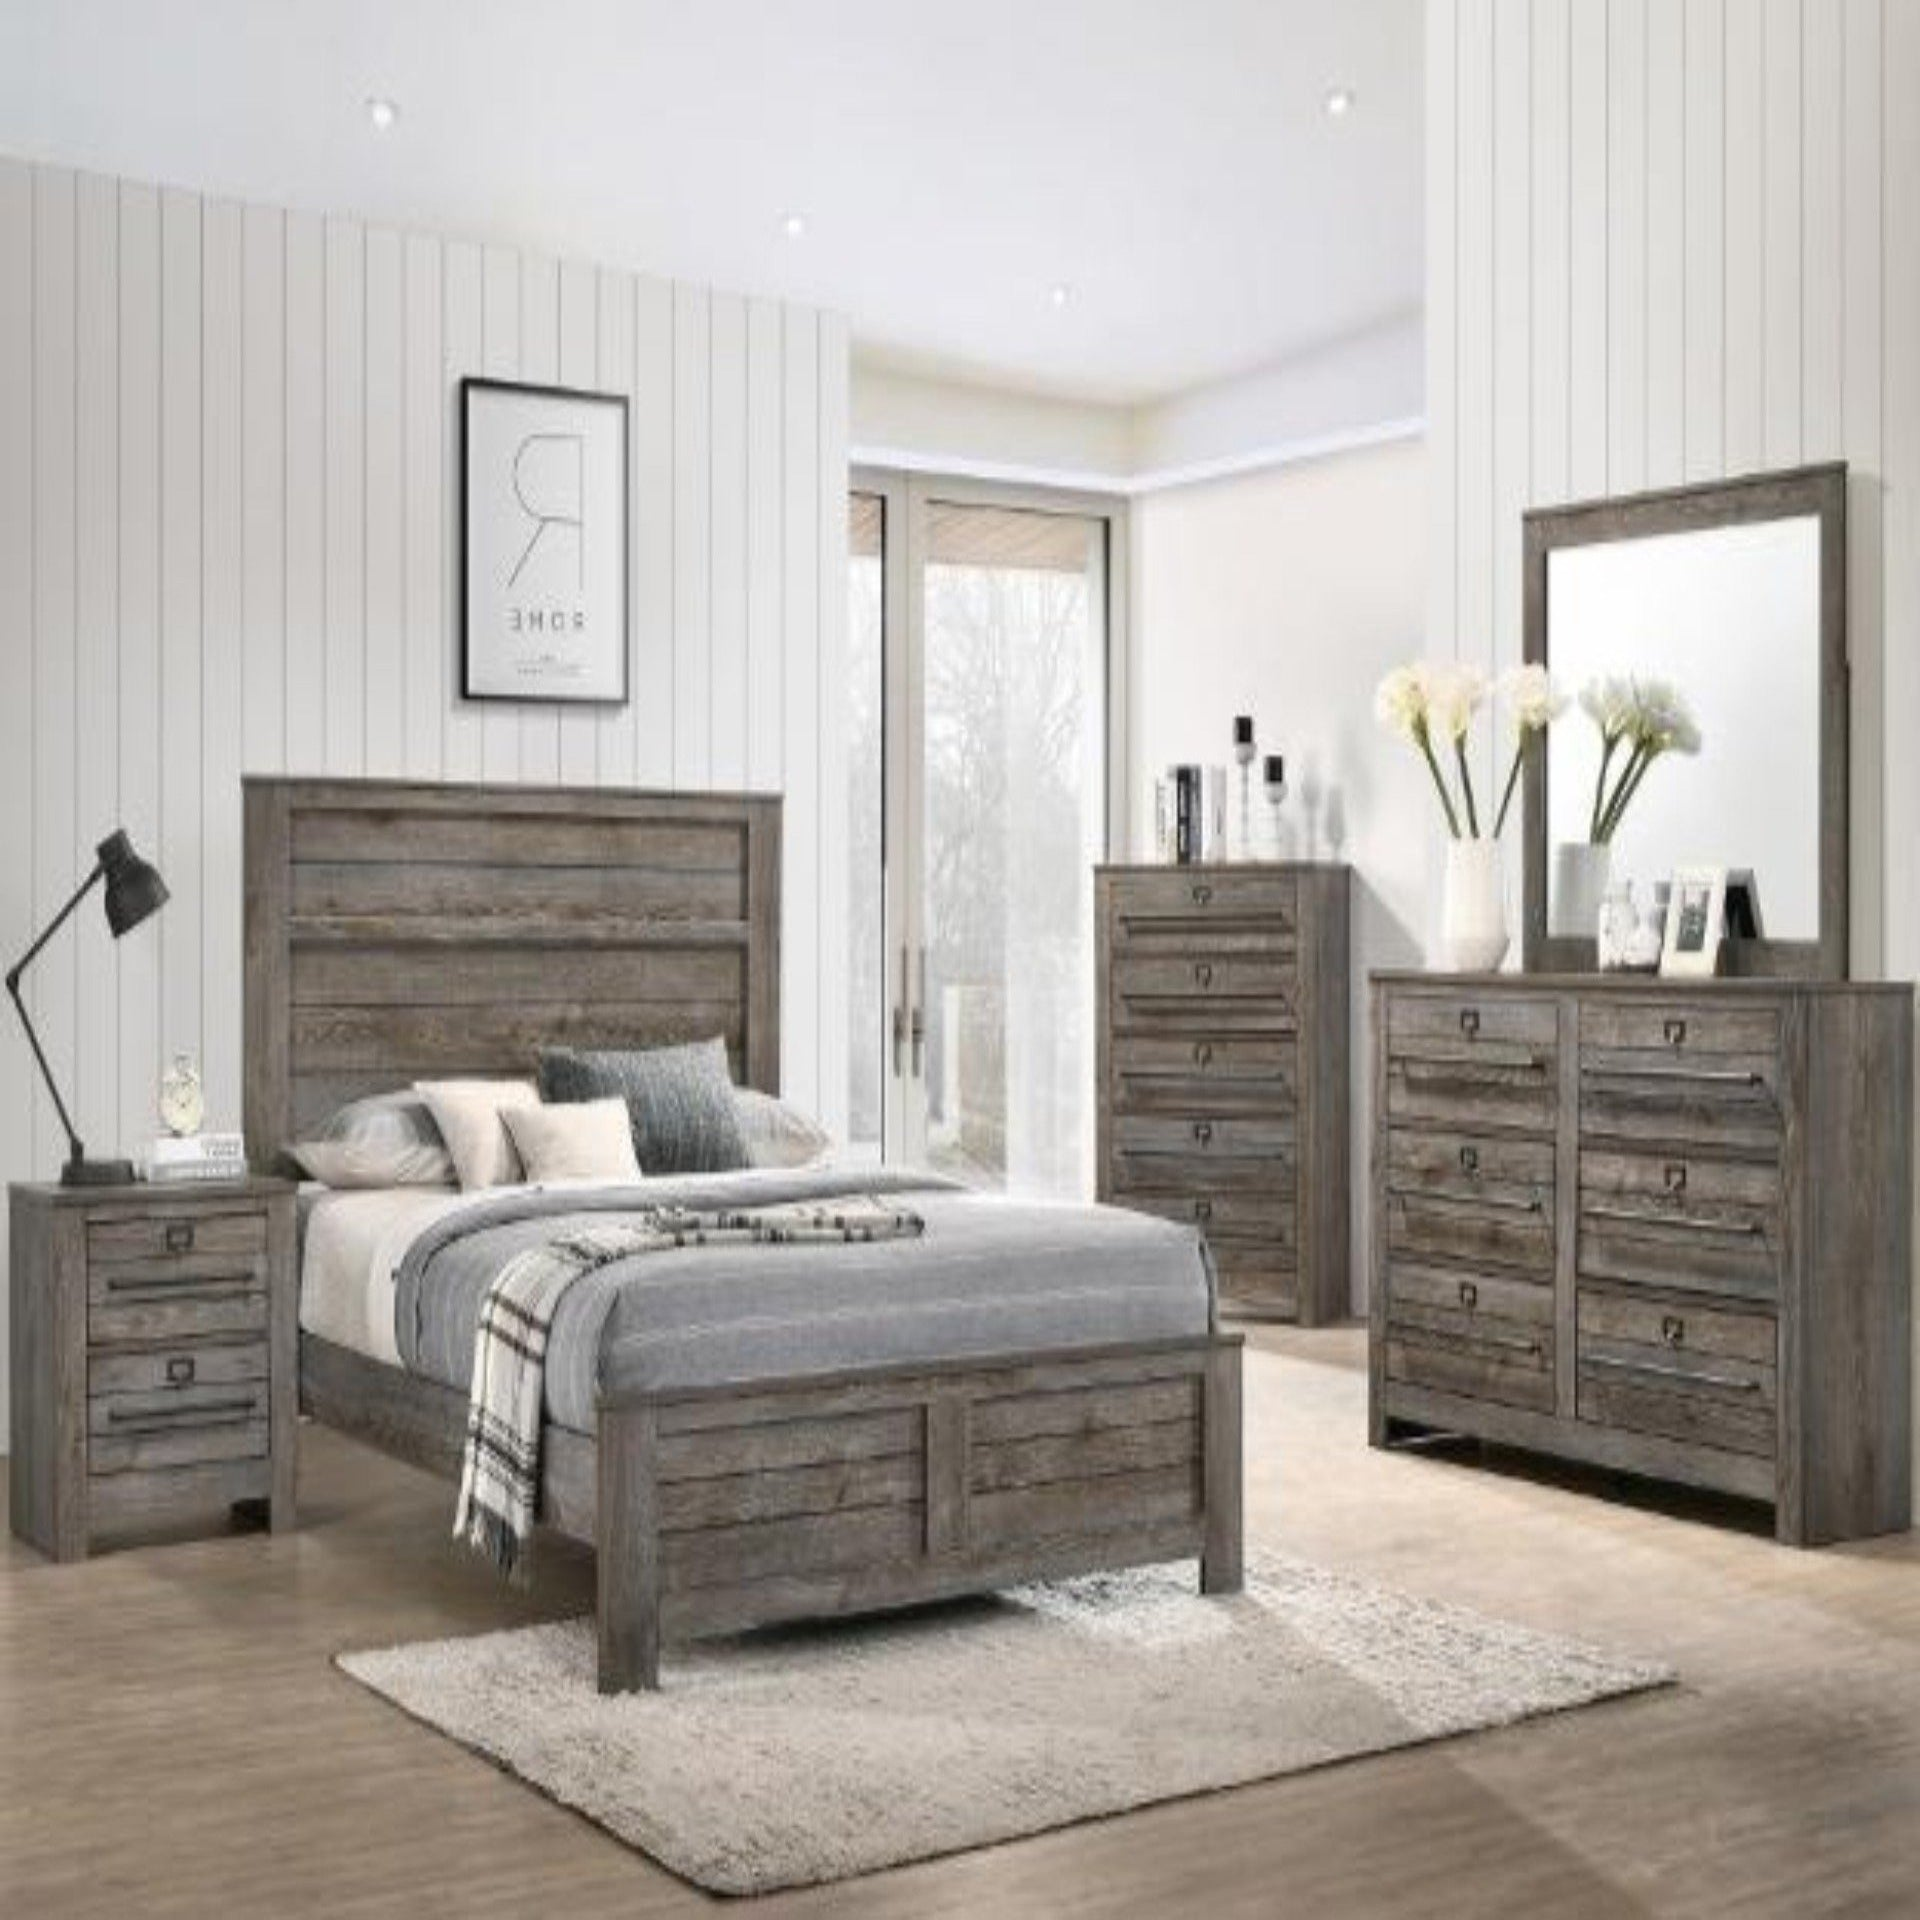 Bateson 4 Piece Bedroom Set